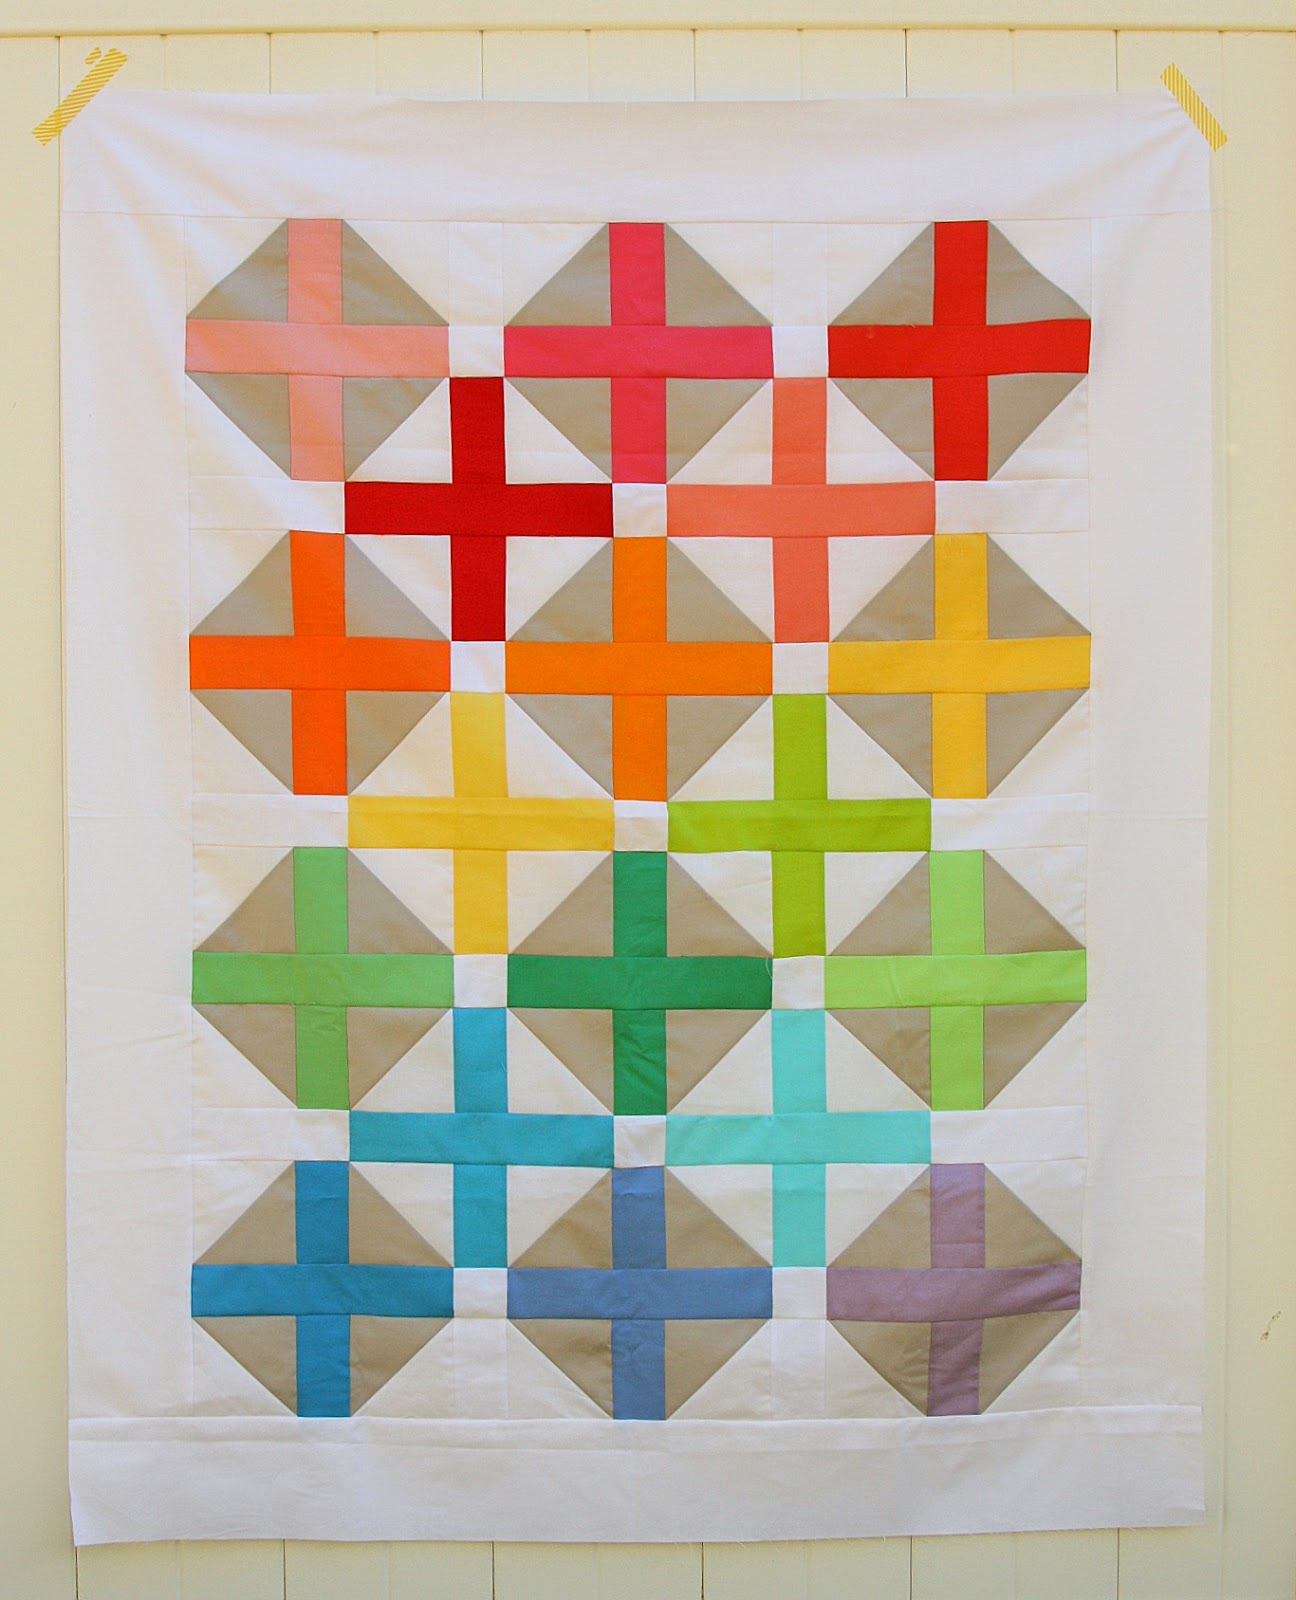 Crib size quilts for sale - This Pattern Includes Instructions For The Original Throw Size 67 X 78 As Well As New Additional Instructions For A Crib Size Version 39 X 51